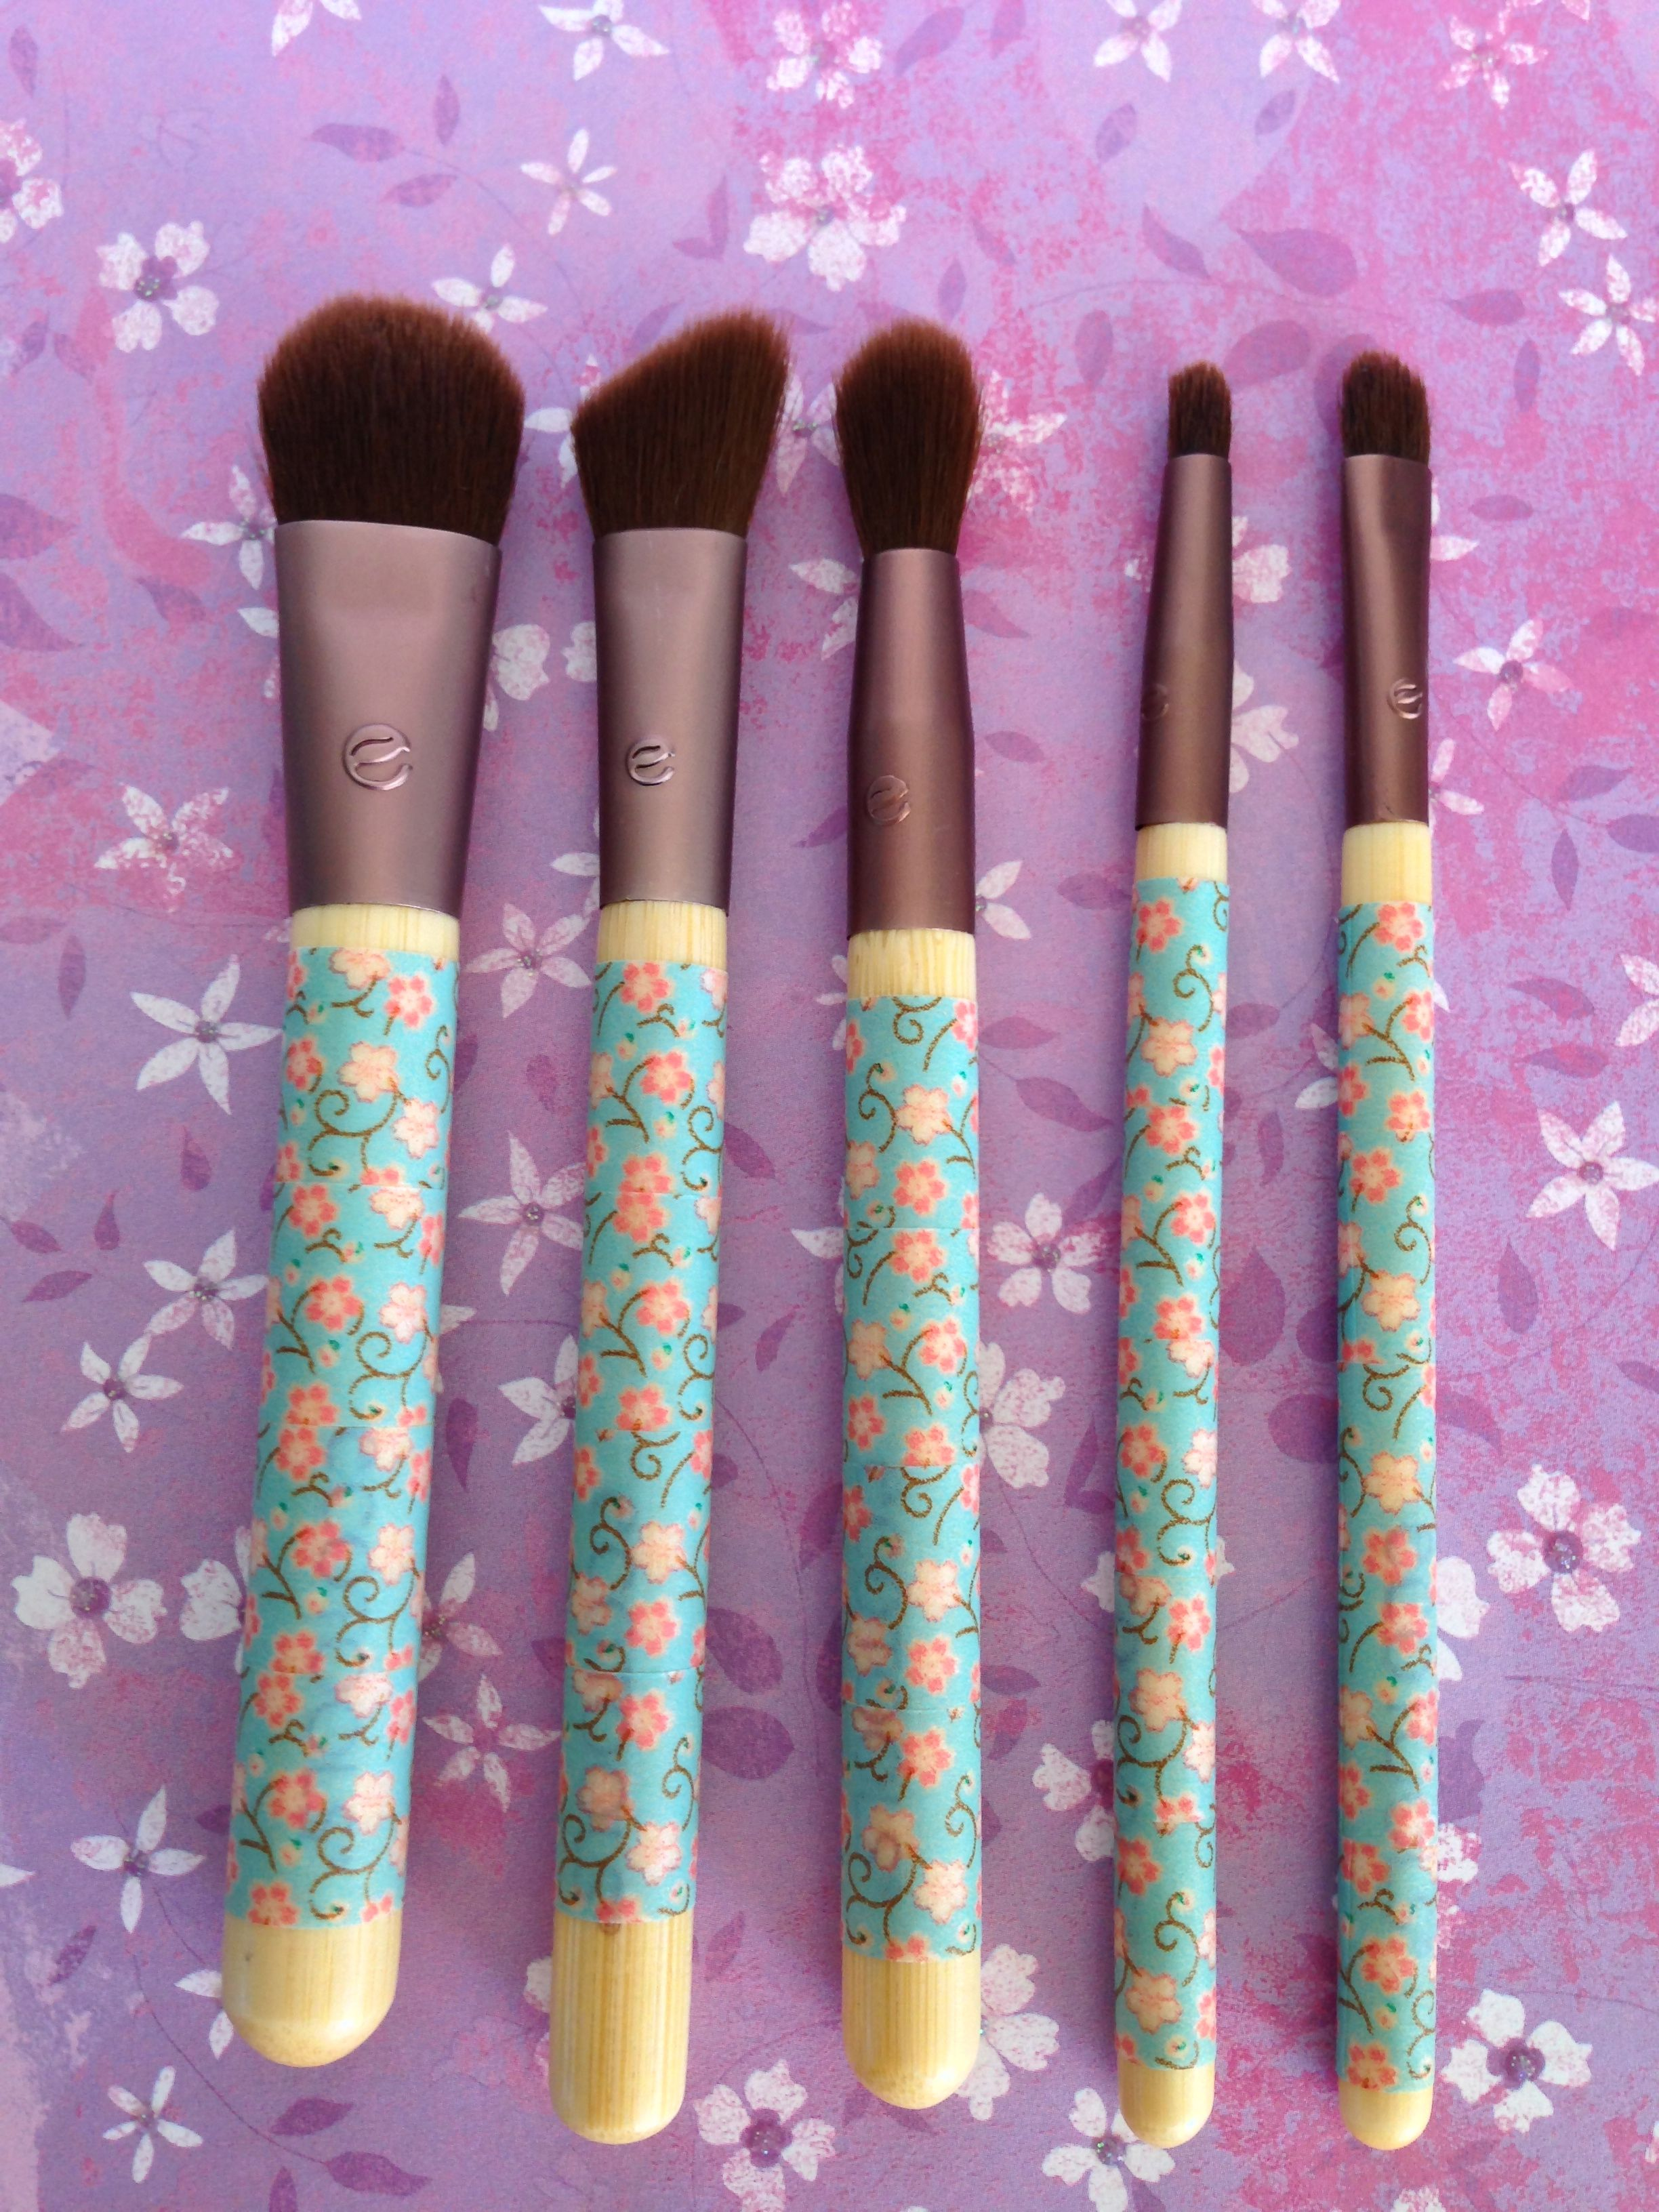 Washi tape wrapped makeup brushes. I used Ecotools